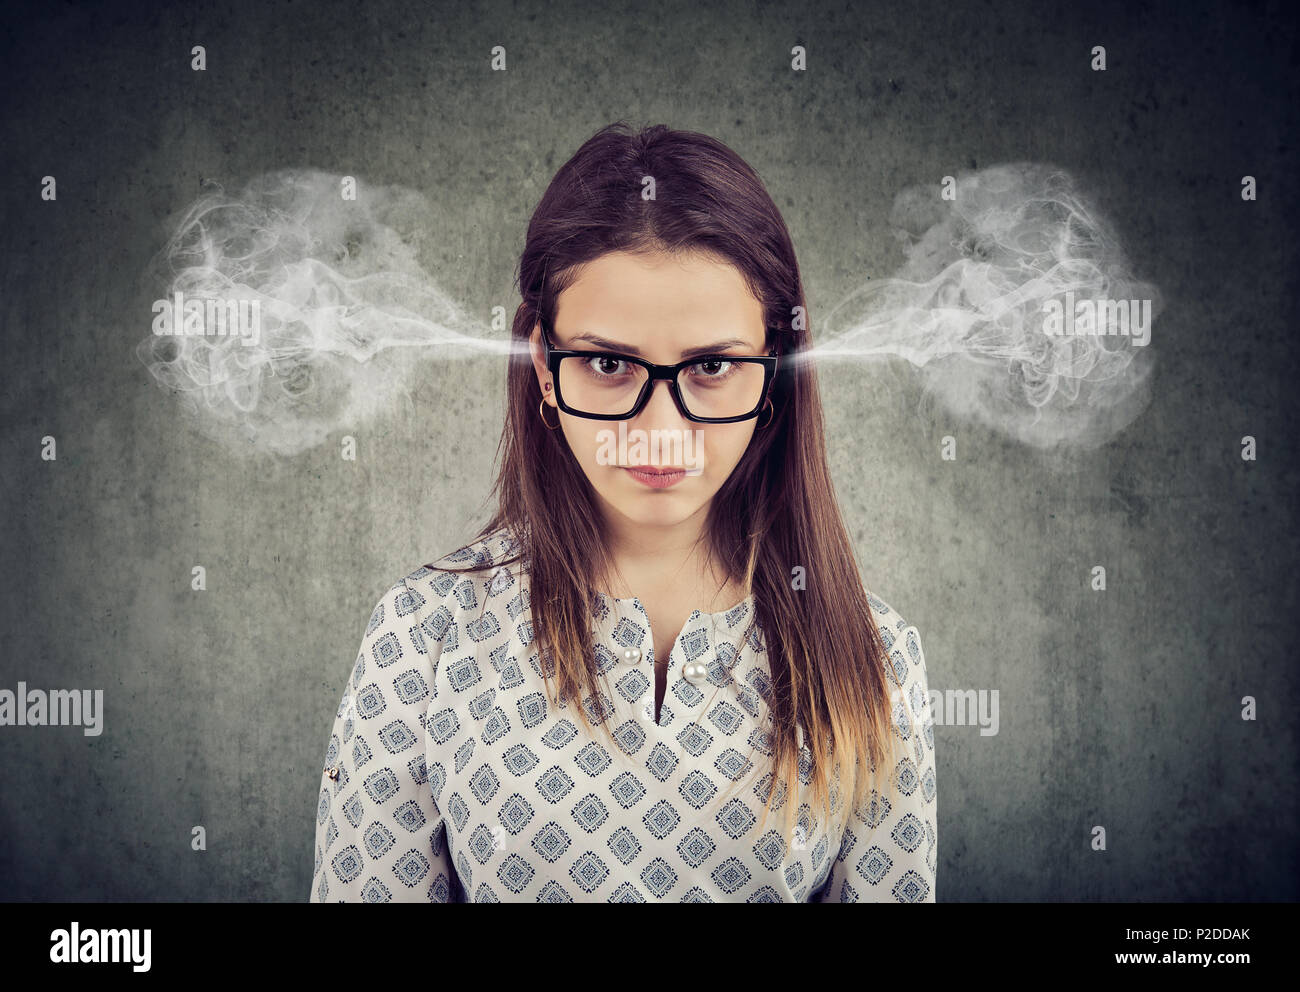 Closeup portrait of angry woman, blowing steam coming out of ears isolated on gray background. Negative human emotions feelings - Stock Image